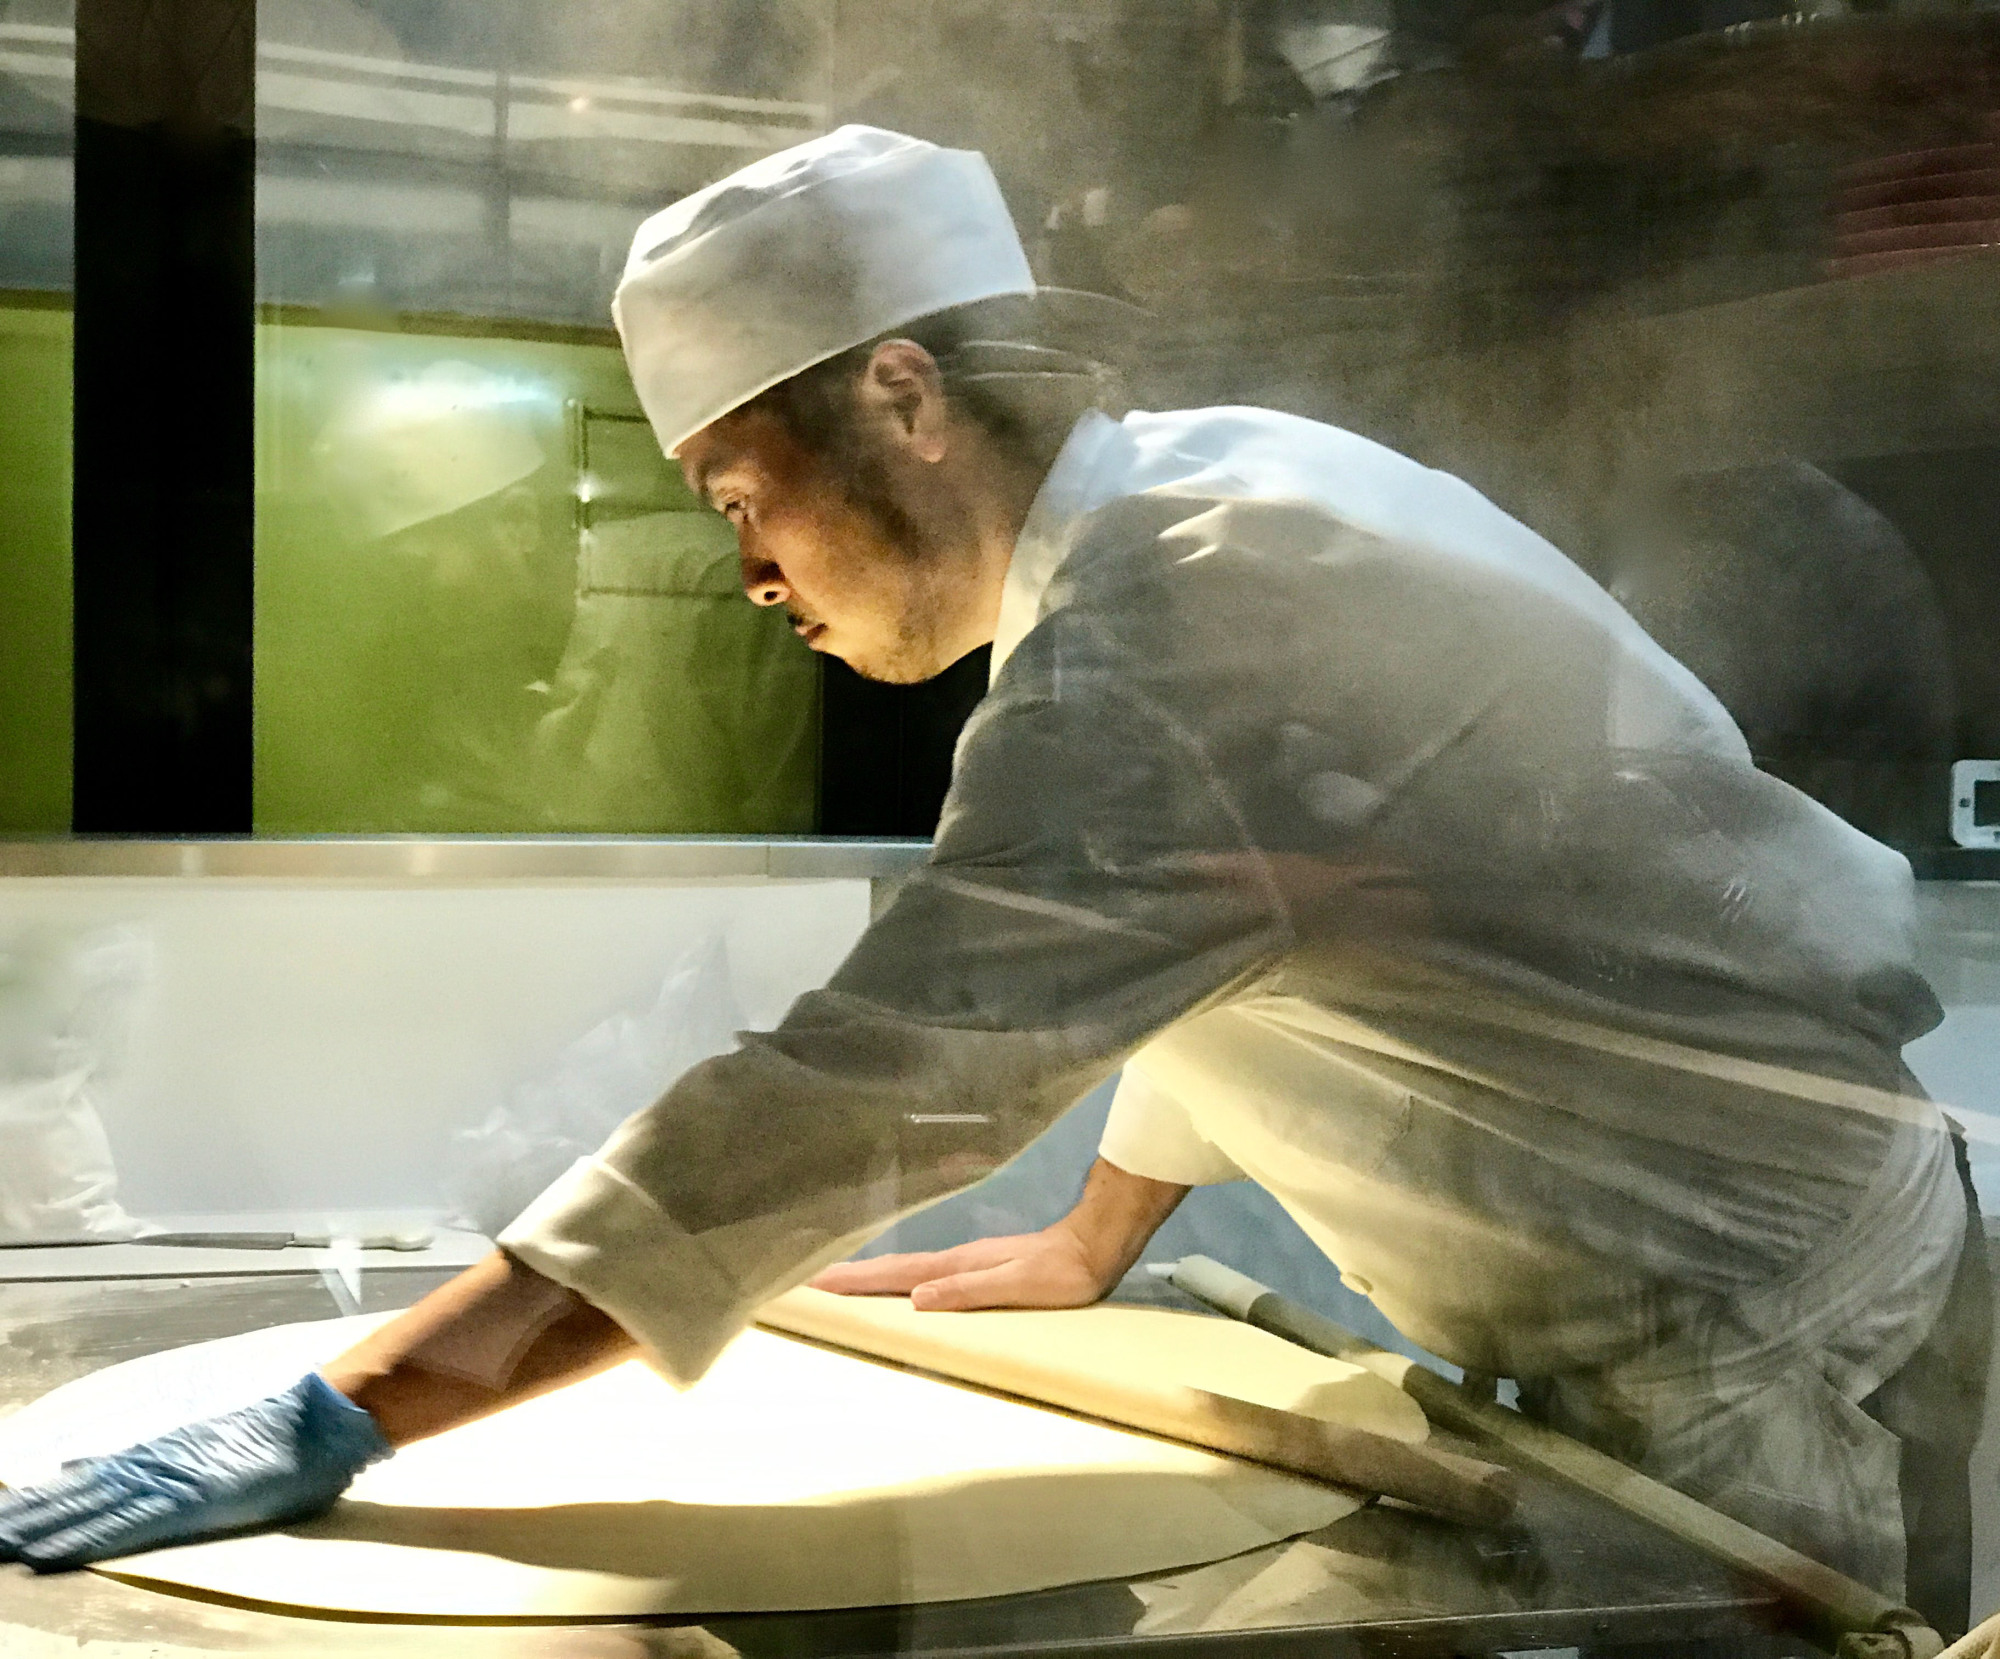 Made to order: A chef rolls out the dough for the udon noodles that fill the bowls at Men Chirashi. | ROBBIE SWINNERTON